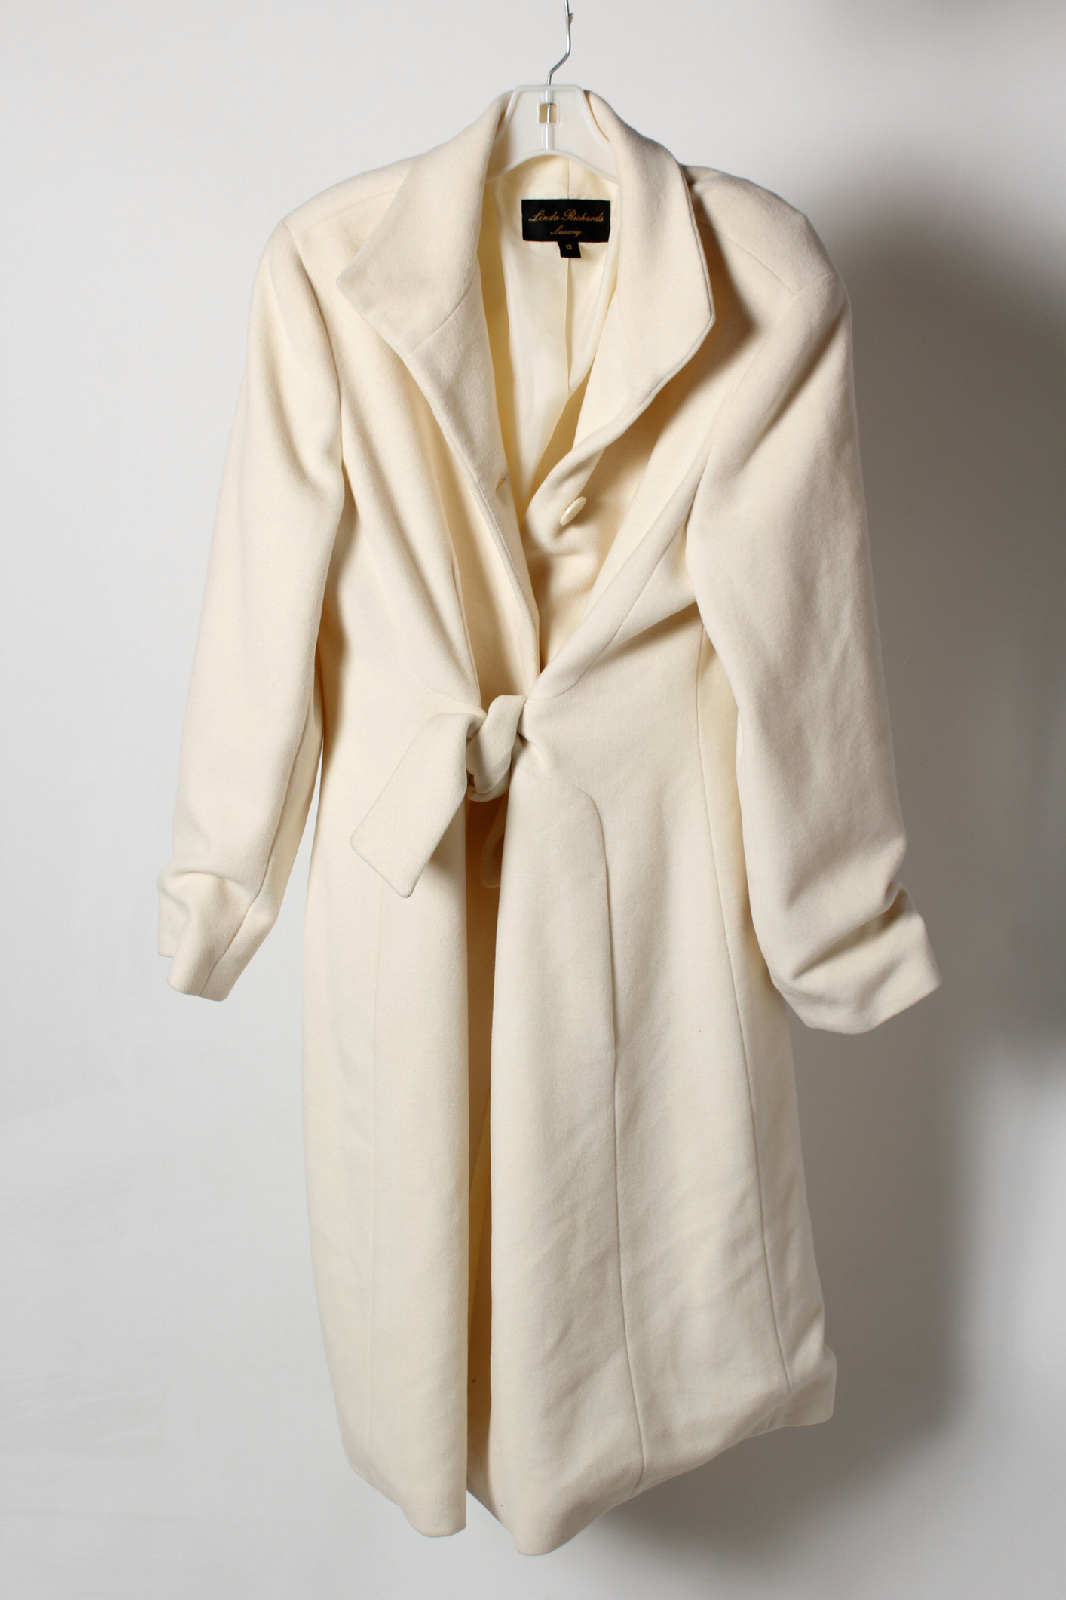 Shop a great selection of Wool Coats & Jackets for Women at Nordstrom Rack. Find designer Wool Coats & Jackets for Women up to 70% off and get free shipping on orders over $ Double Face Wool Blend Wrap Front Coat (Regular & Petite) Badgley Mischka. Double Face Wool Blend Wrap Front Coat (Regular & Petite) Bring your invoice and.